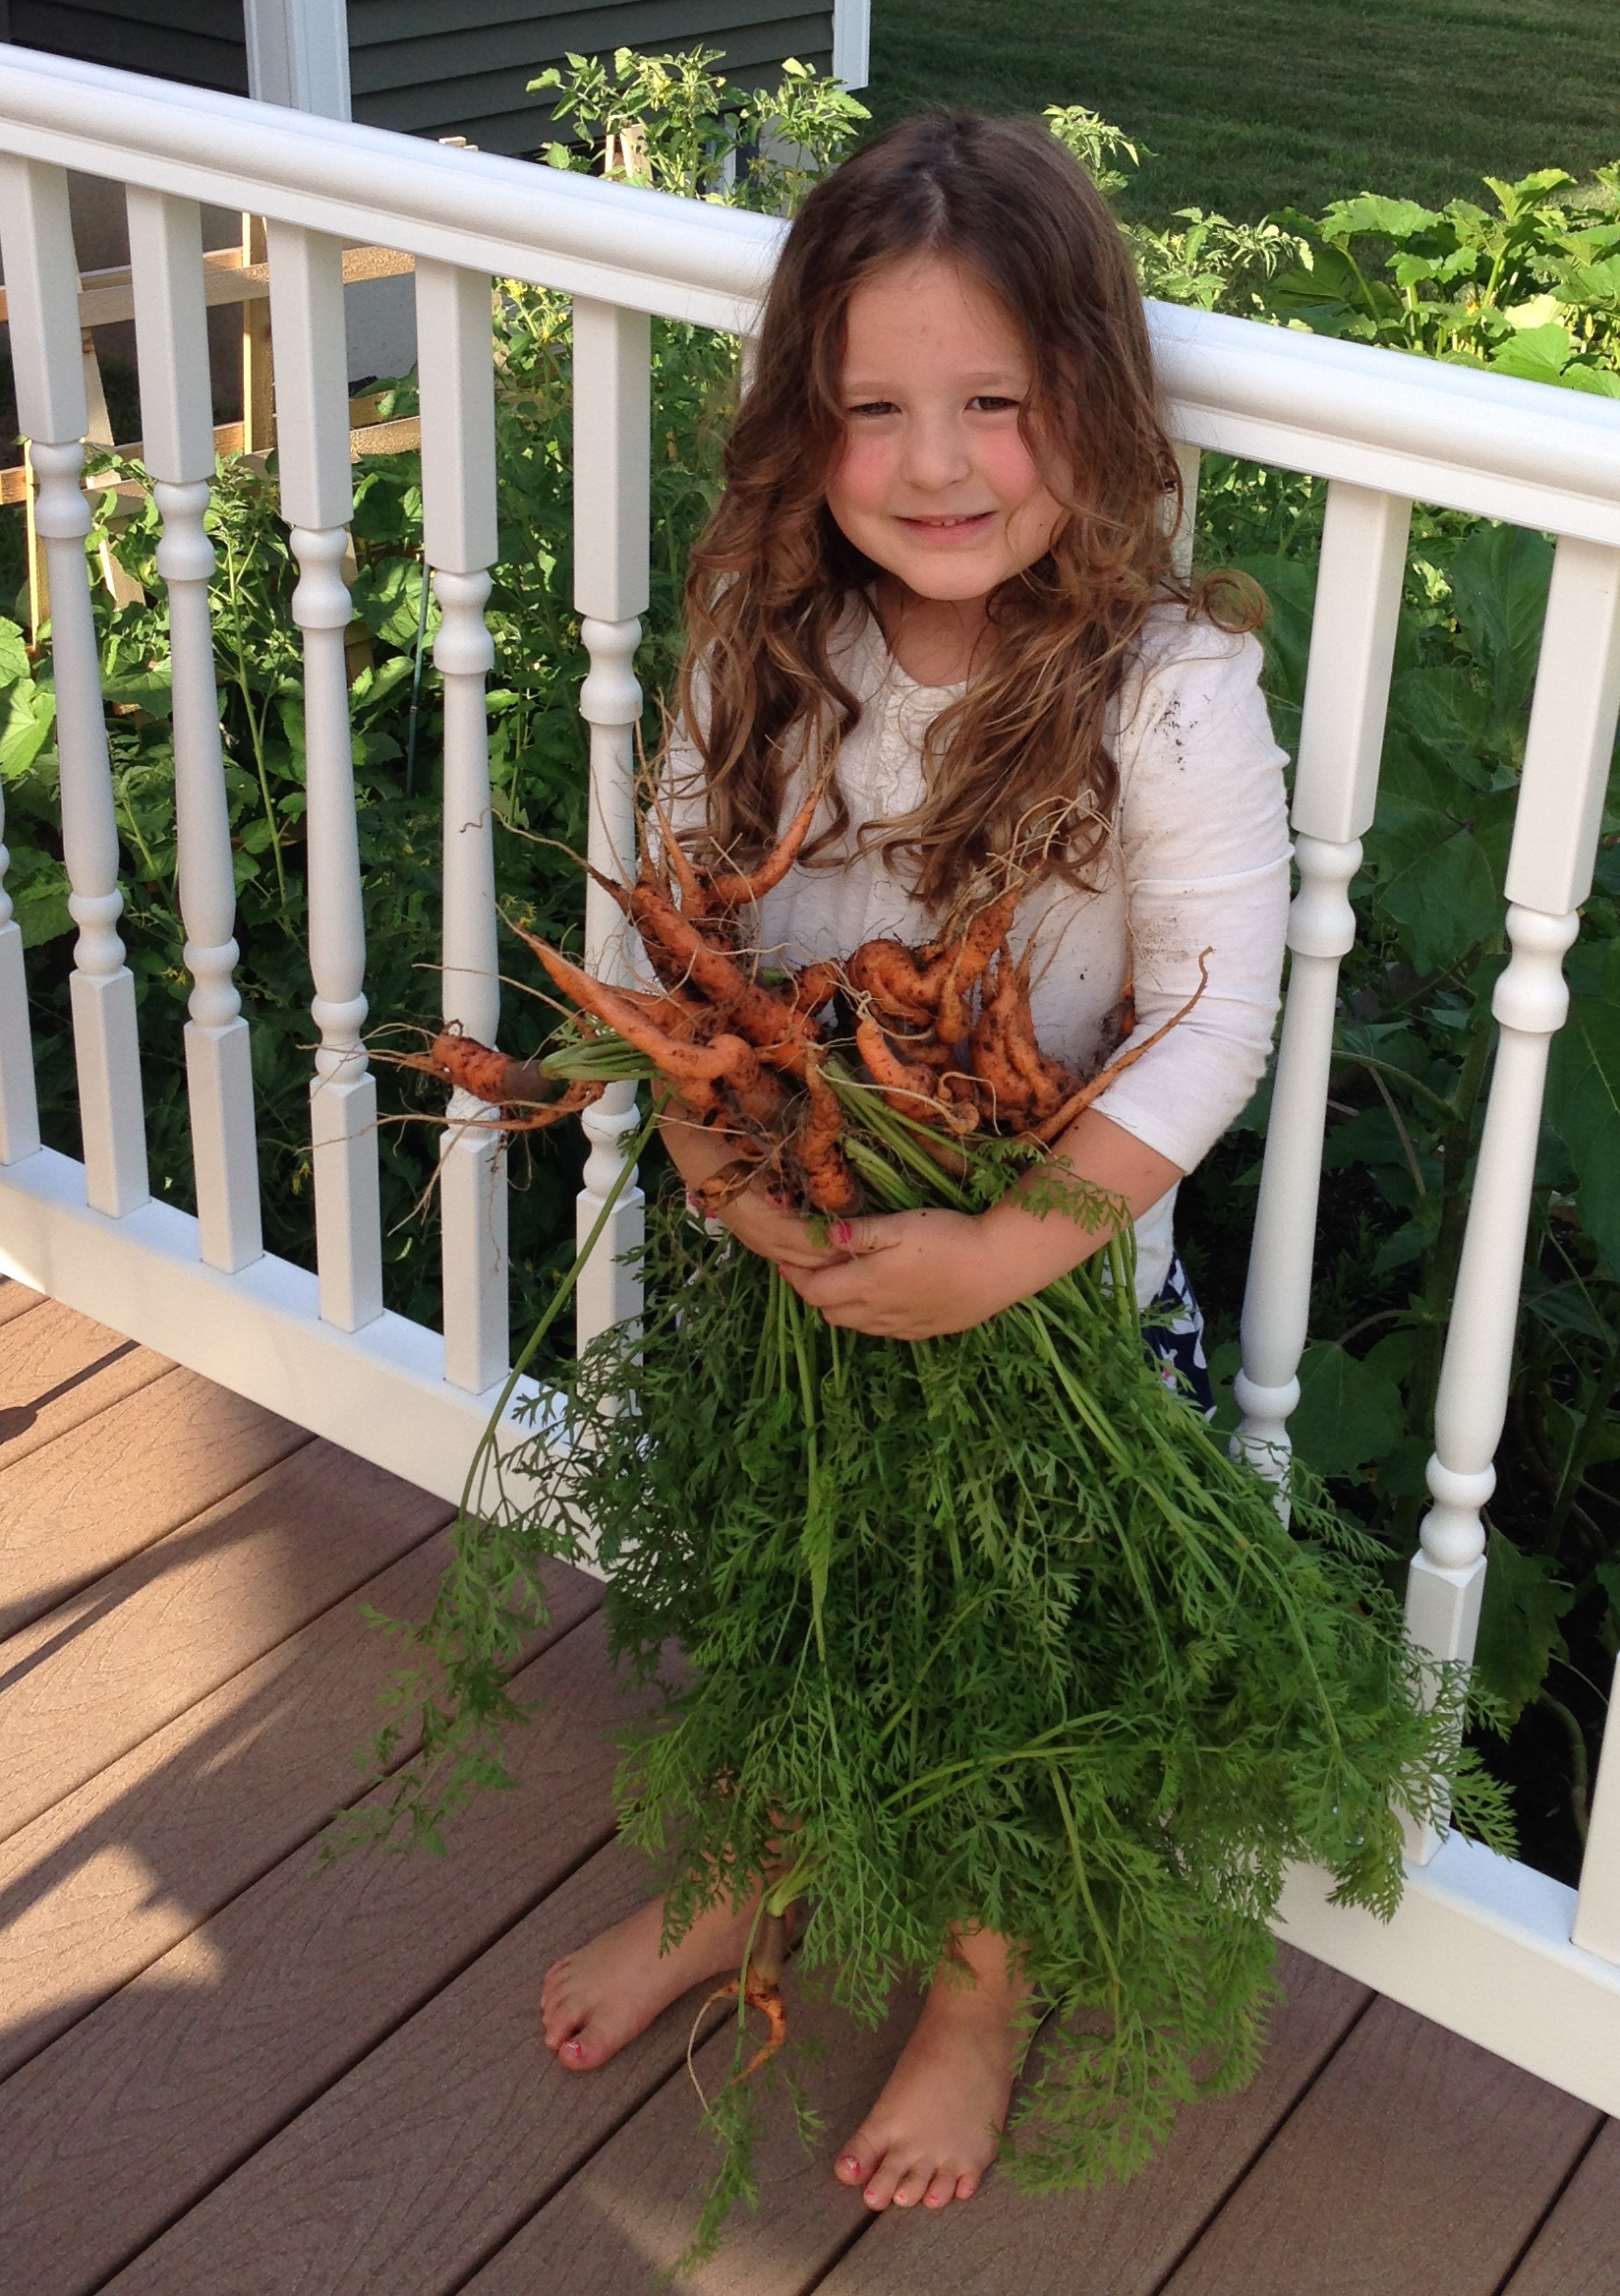 small girl holding a bunch of carrots she harvested